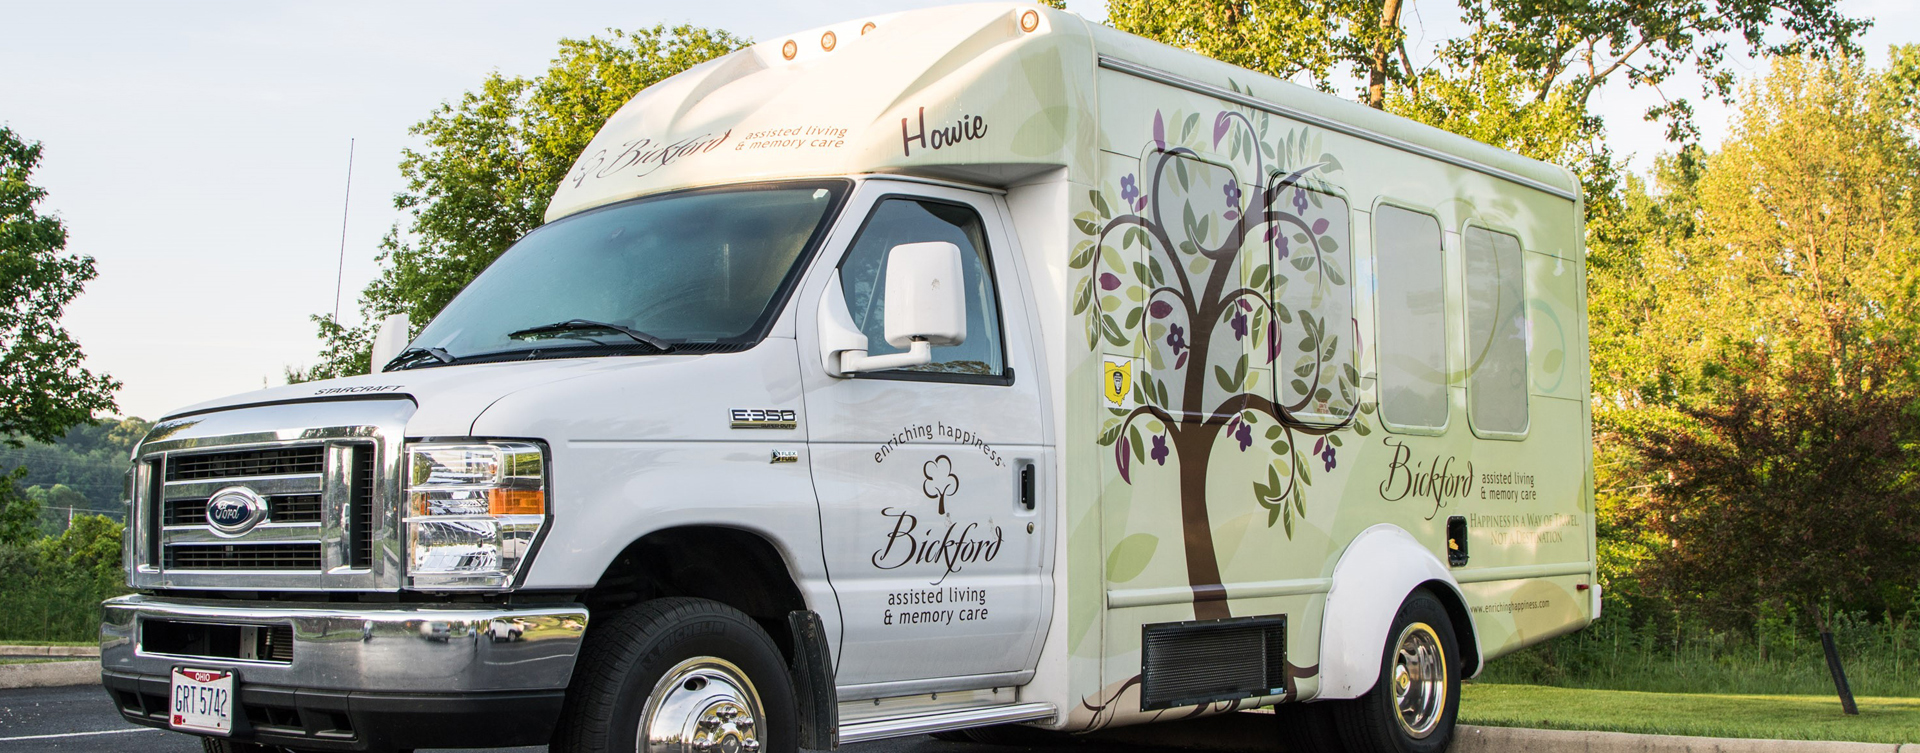 Participate in community outings aboard the Bickford bus HOWIE at Bickford of Davenport